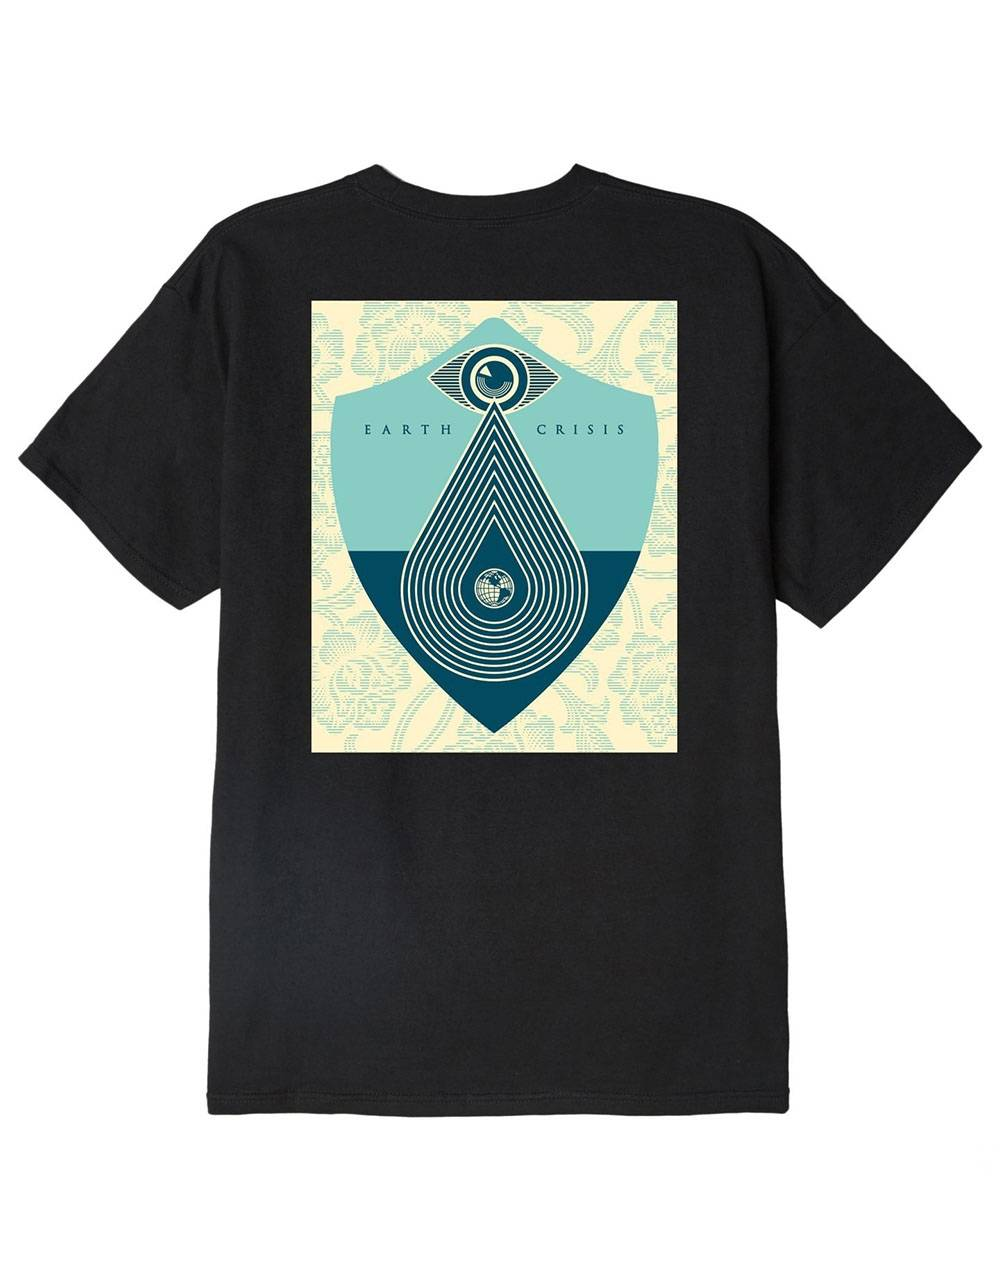 Obey Earth crisis classic t-shirt - black obey T-shirt 45,00€